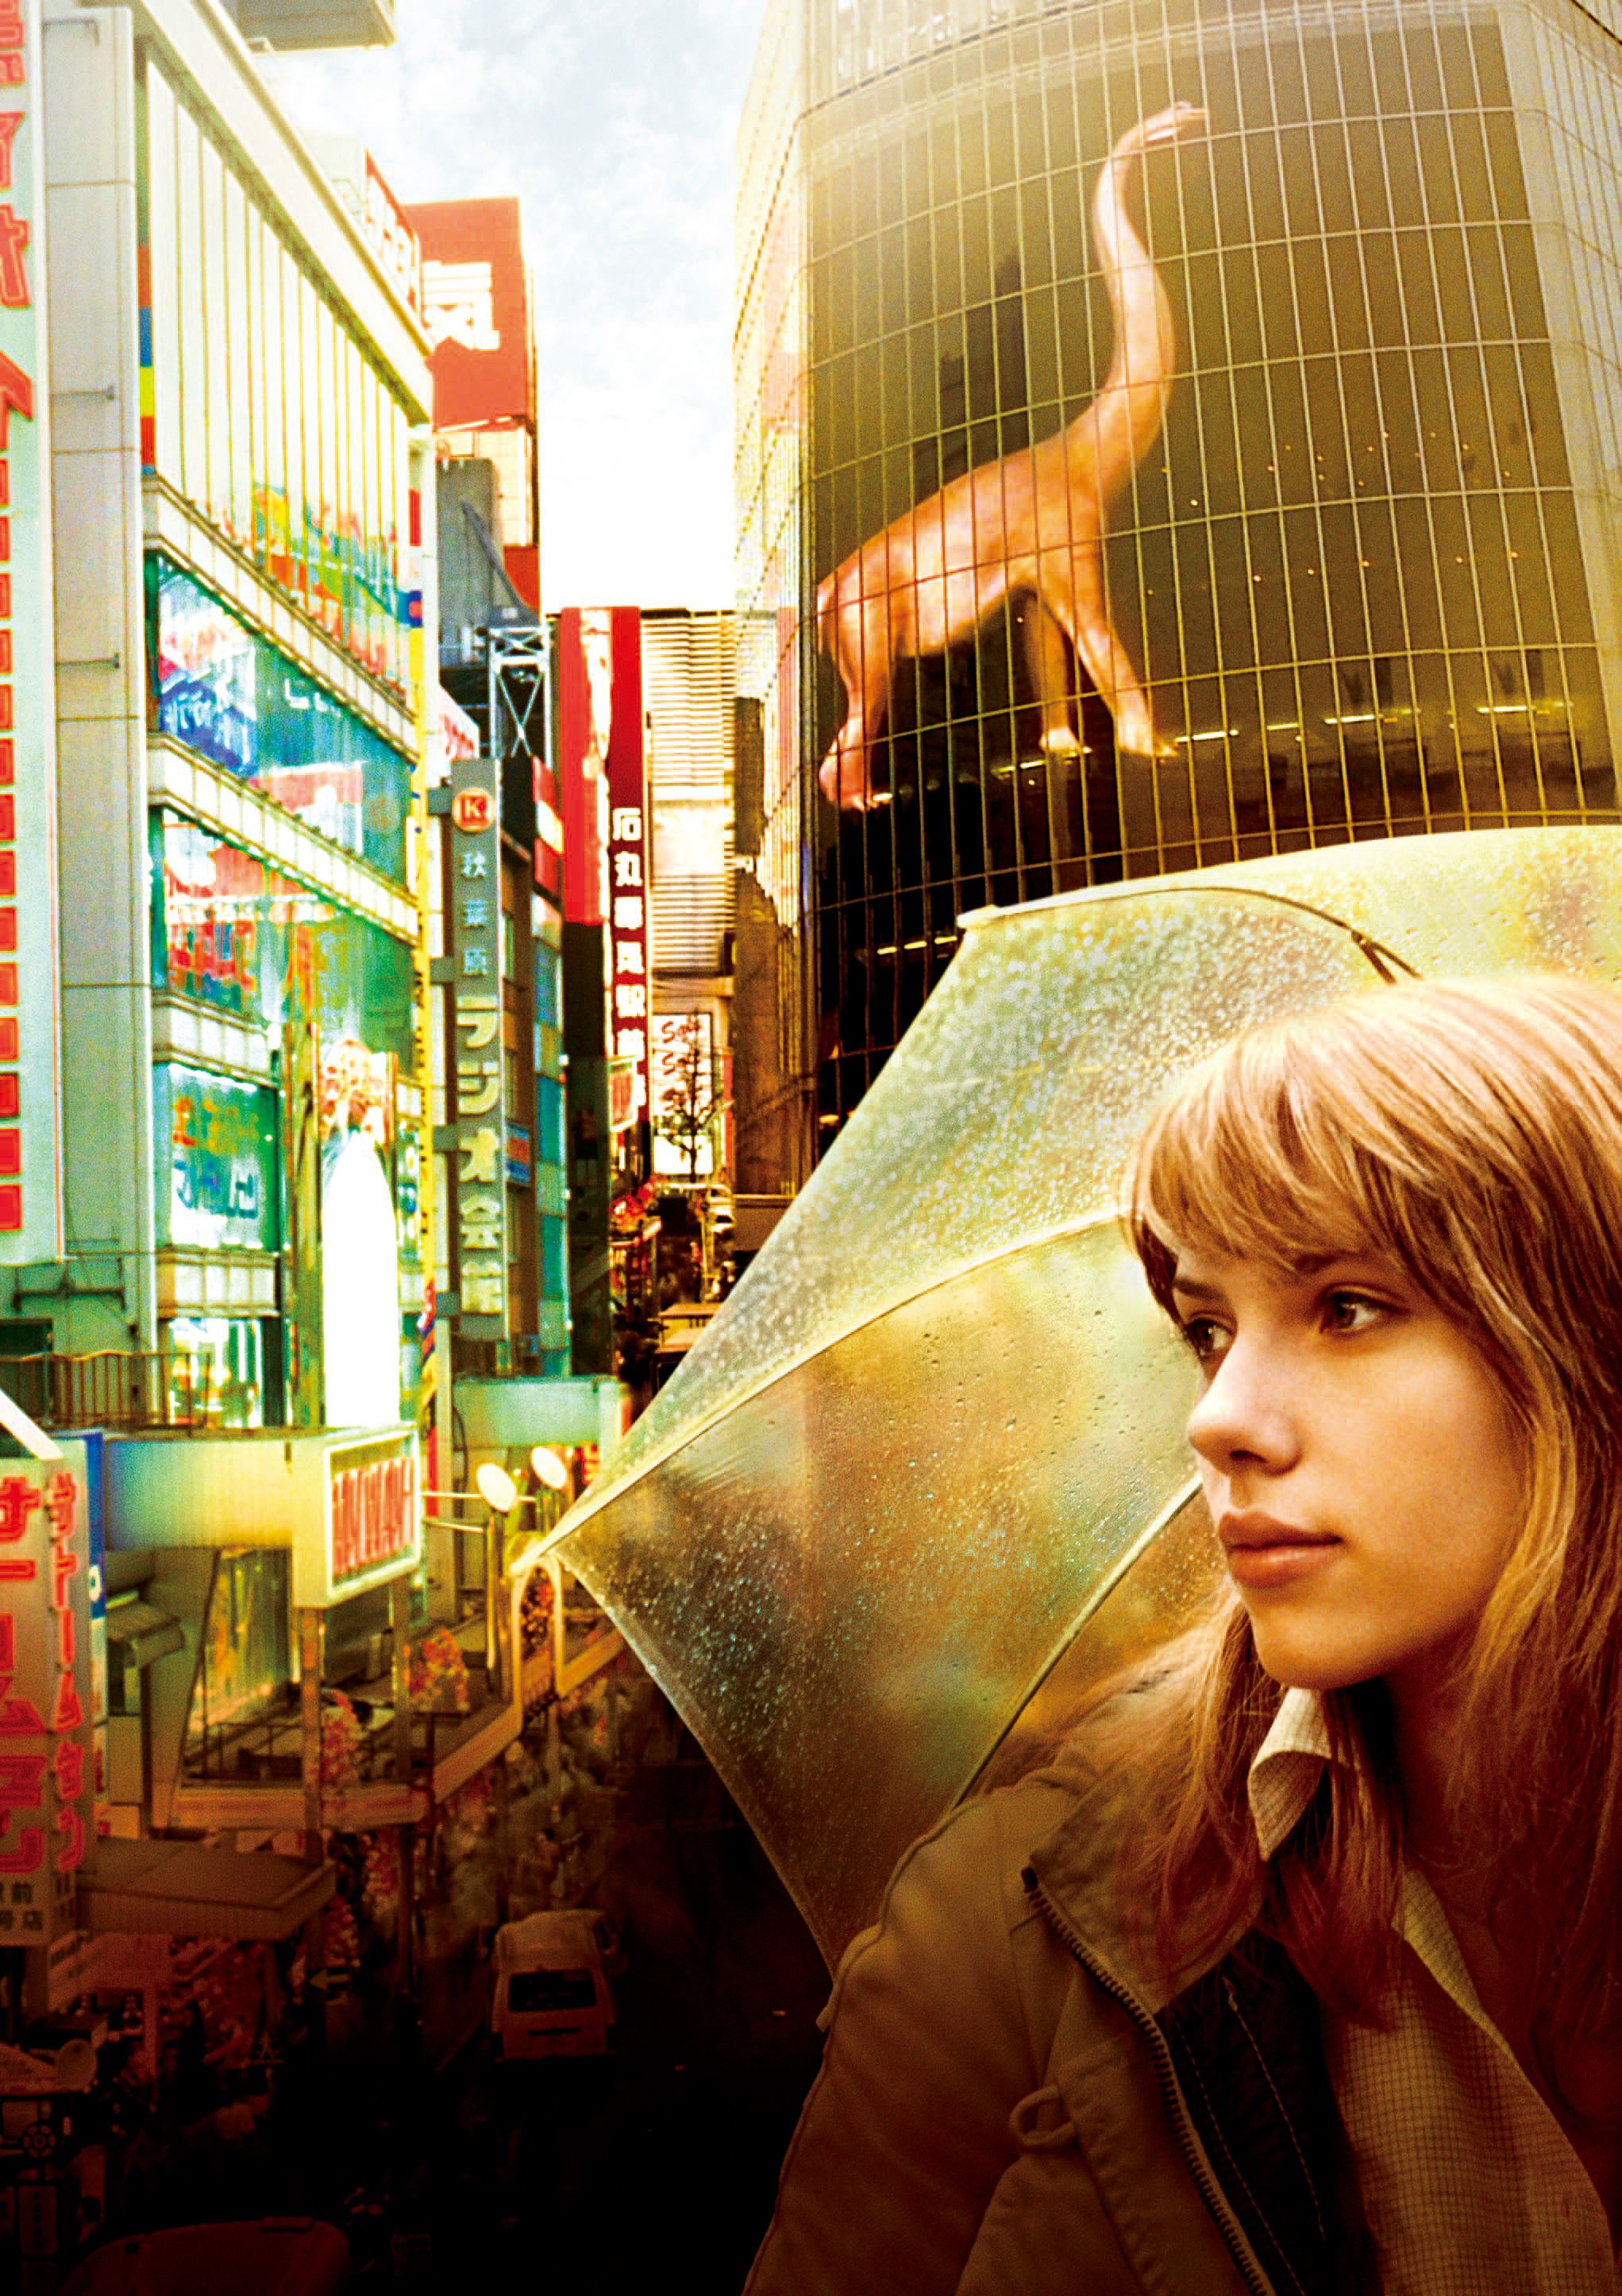 Lost In Translation With Images Lost In Translation Movie